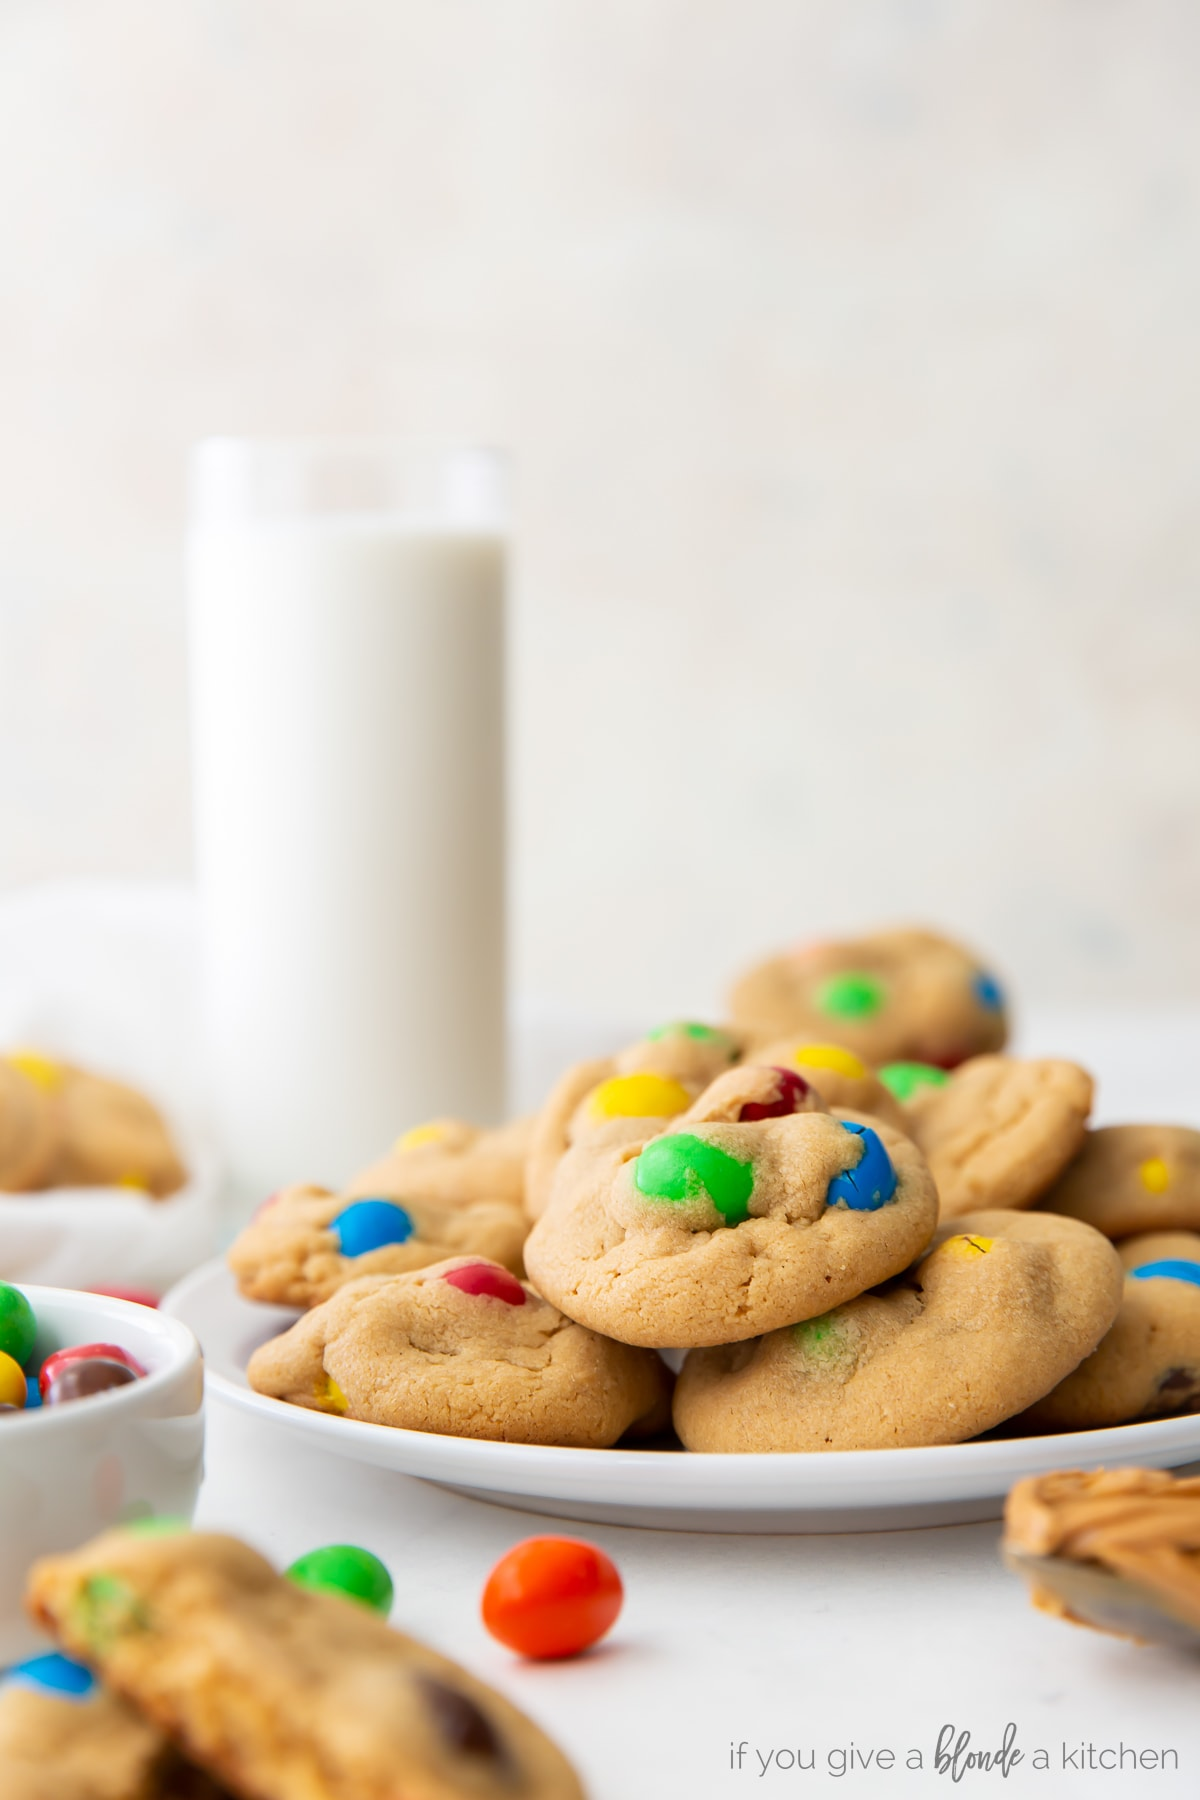 stacks of peanut m&m cookies with m&m candies